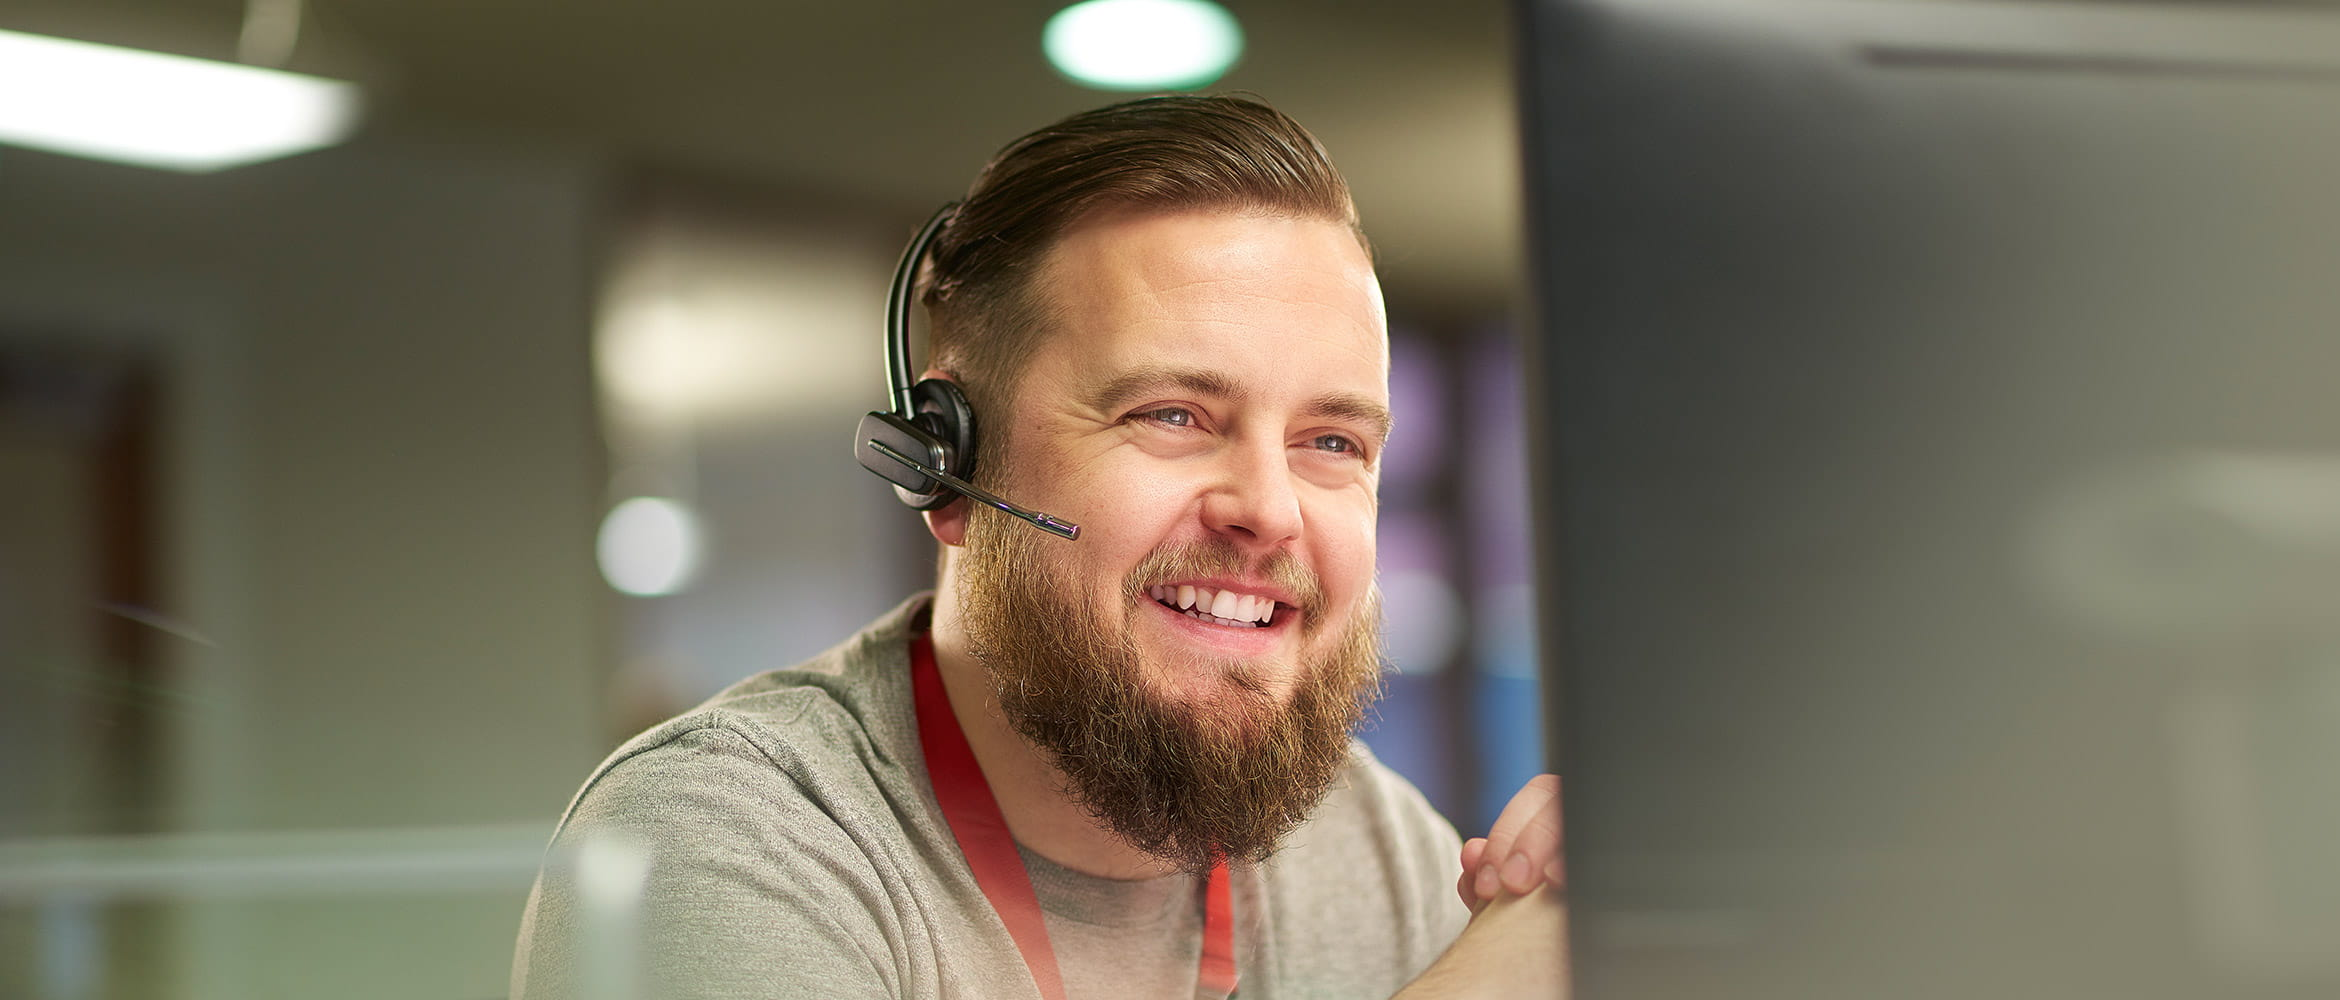 Smiling man talking on a hands free headset and looking at a computer